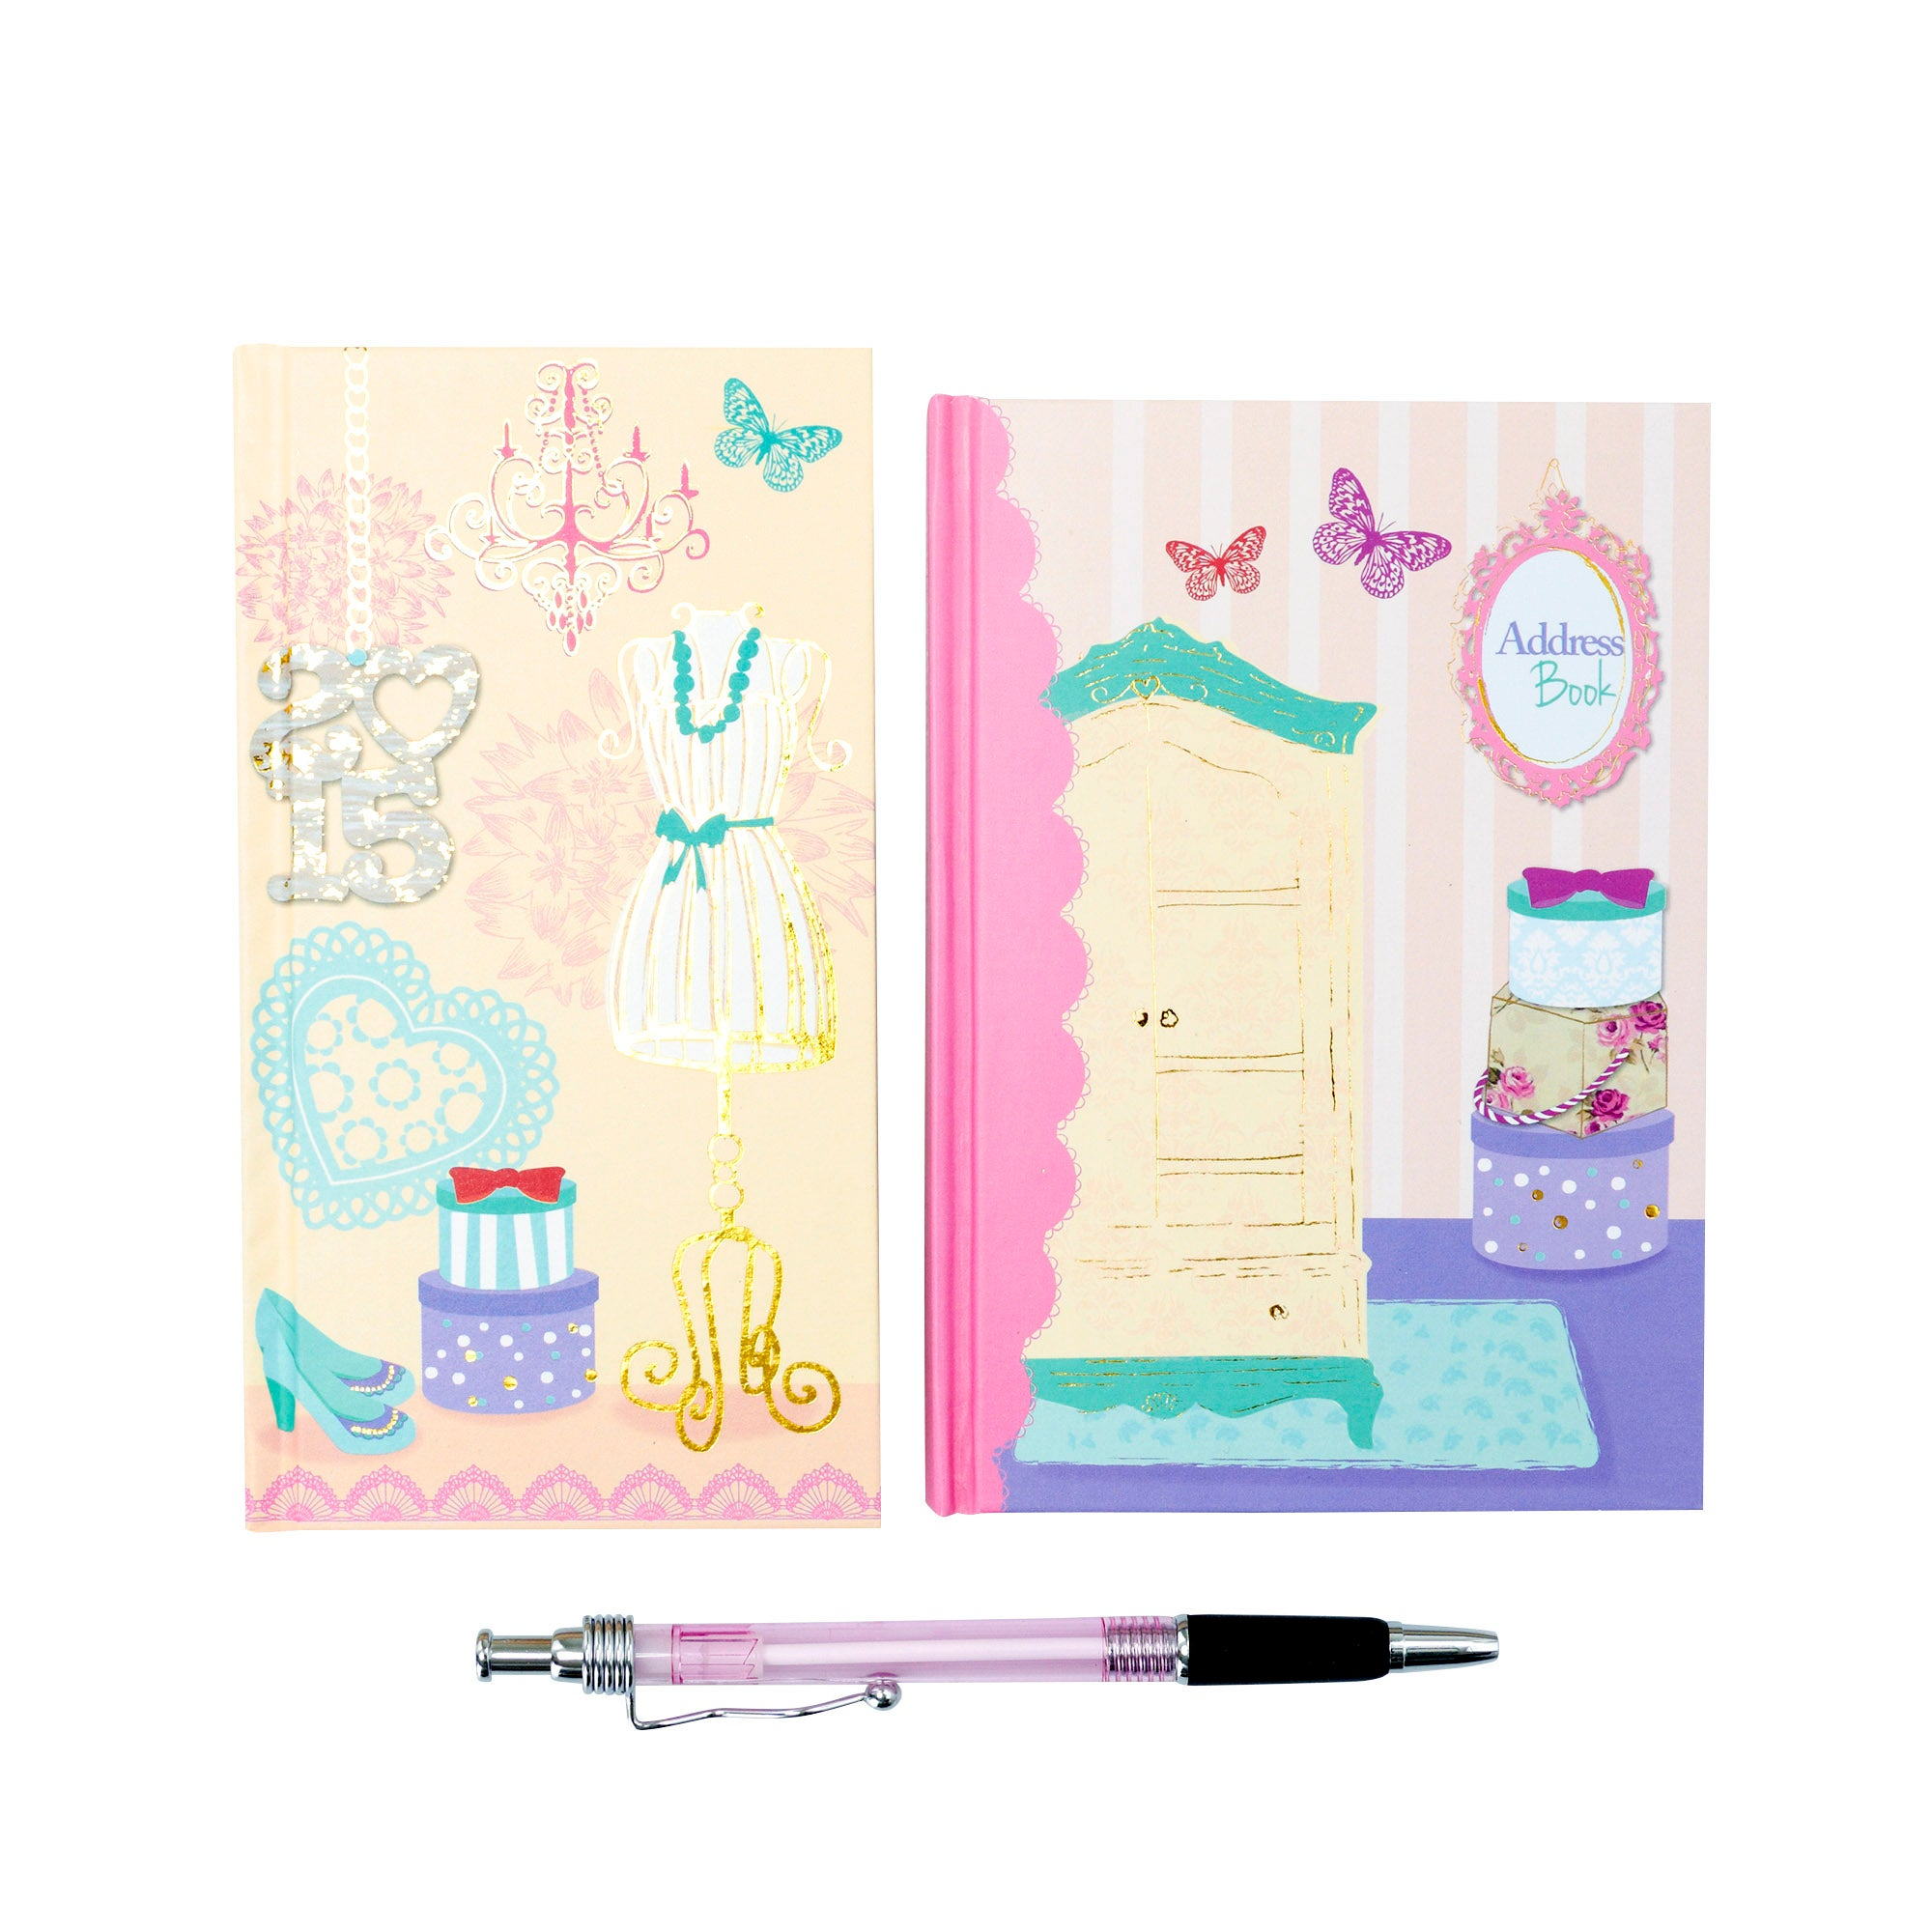 Vintage 2015 Diary and Address Book